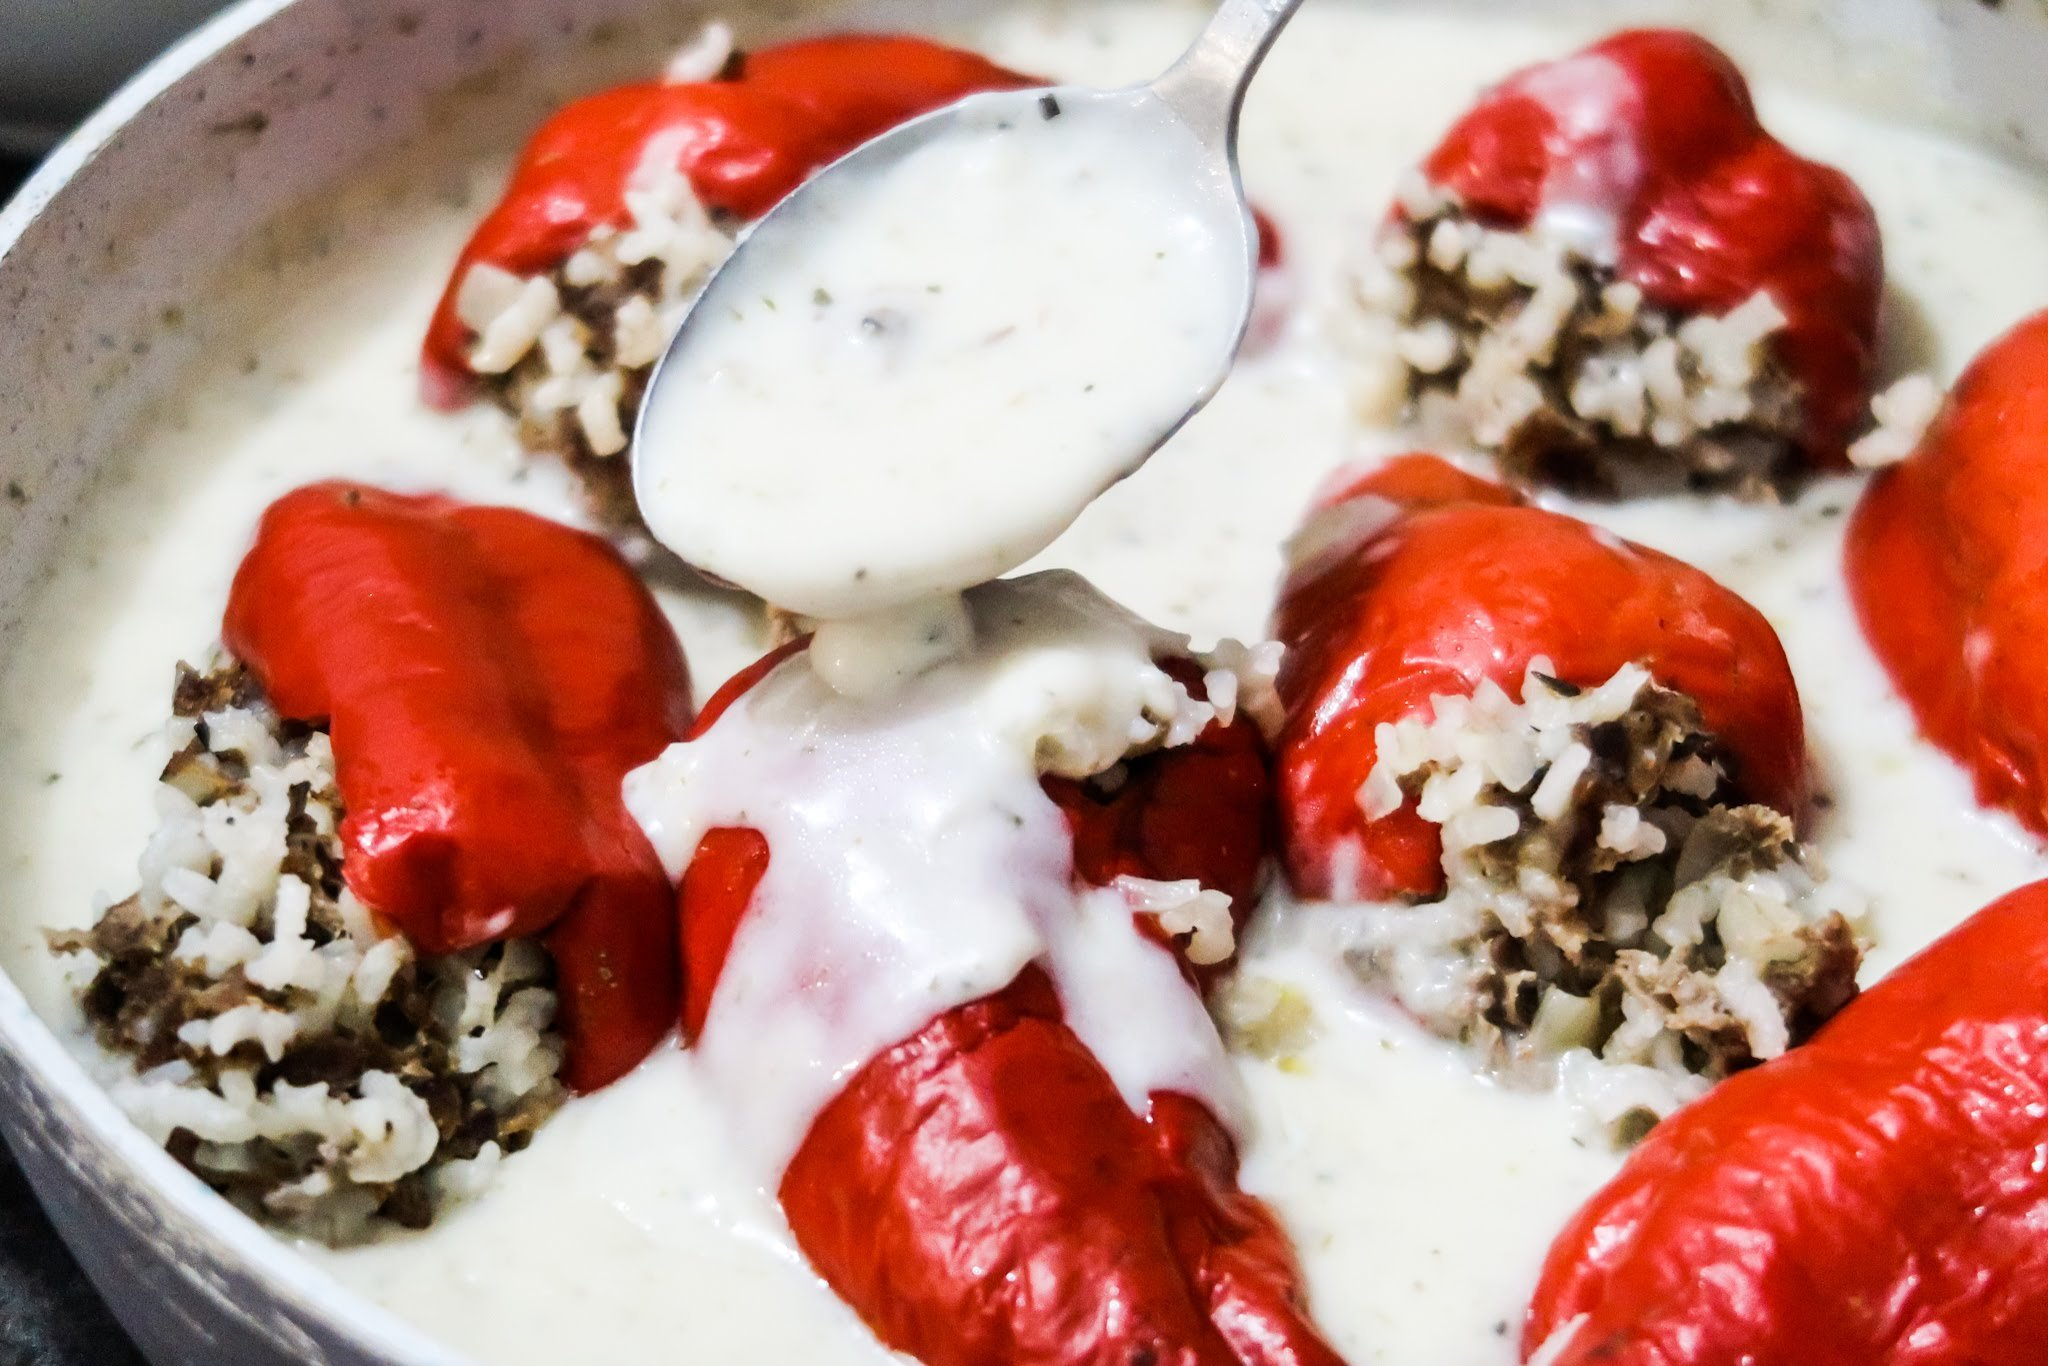 Homemade easy stuffed peppers! This stuffed peppers recipe is perfect for a healthy dinner and if you're not sharing with others - great meal prep dinner recipe that you can reheat in the microwave!